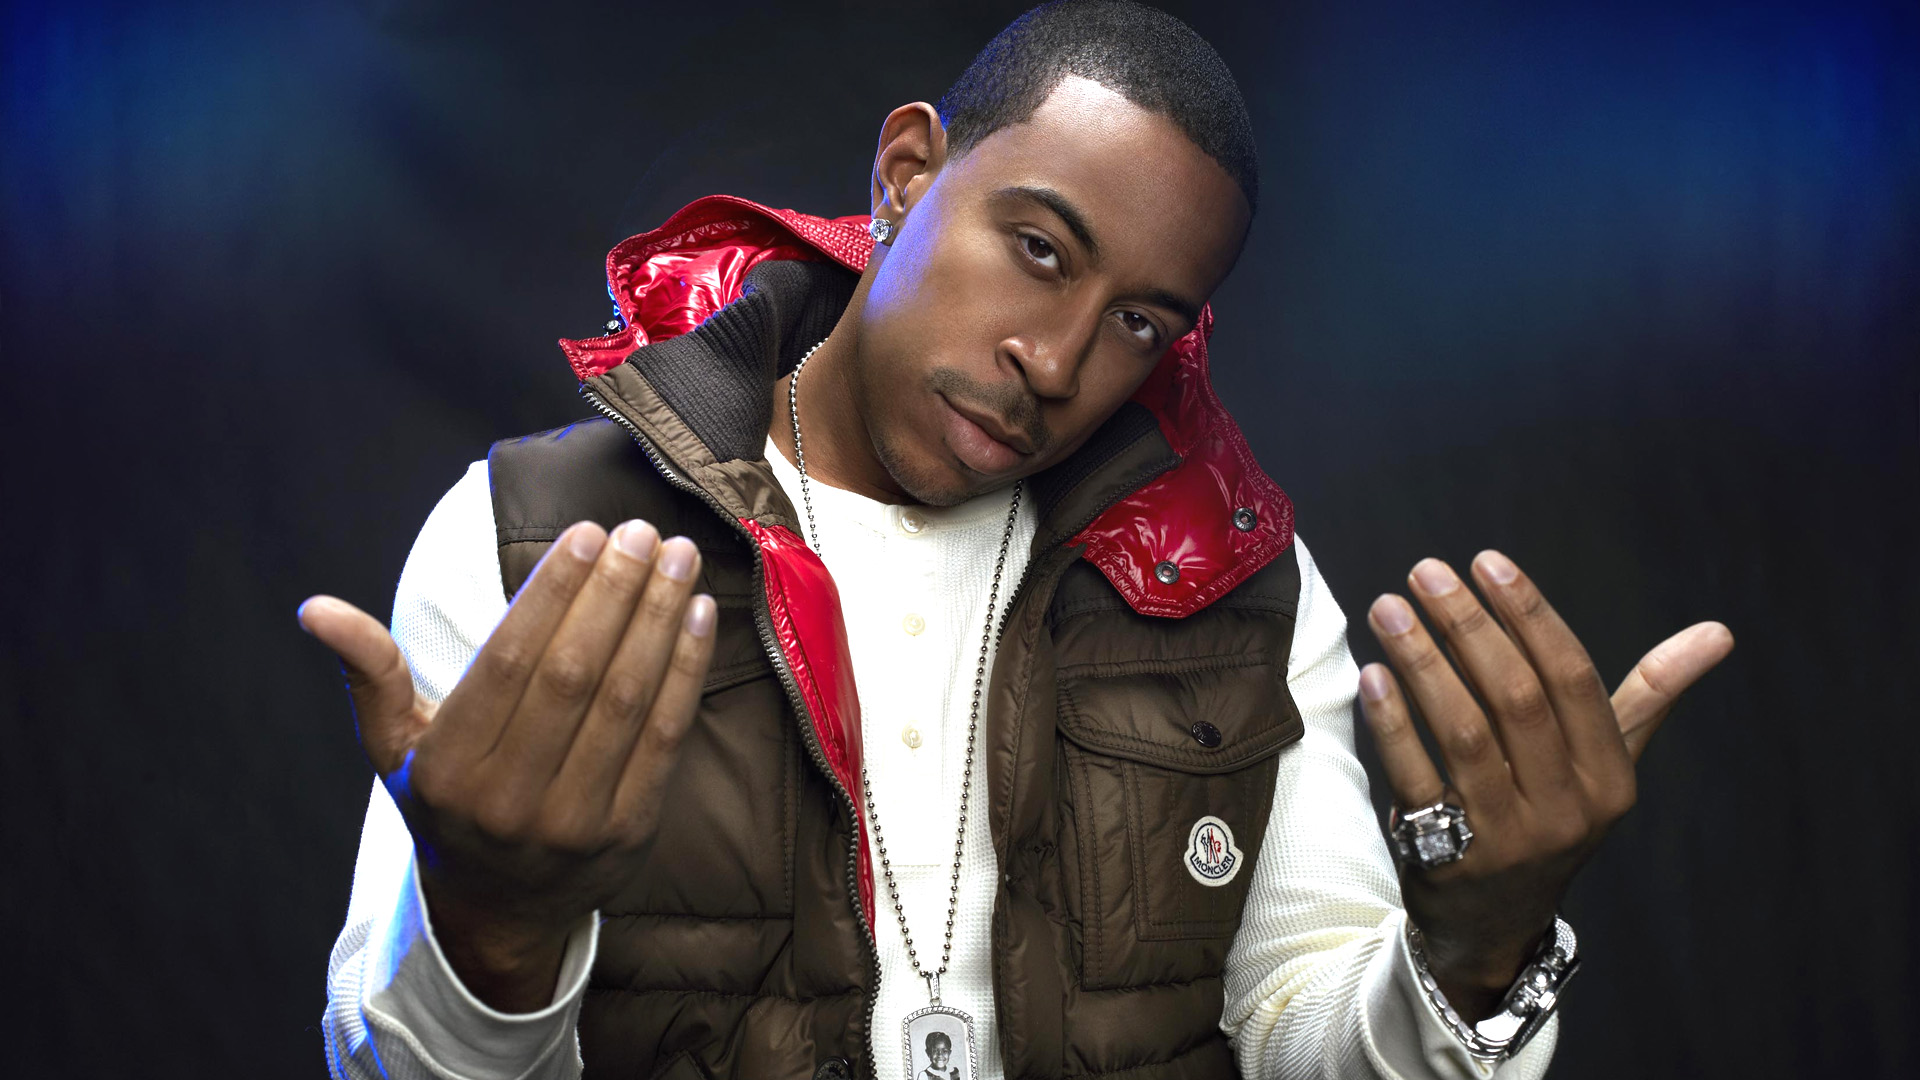 Ludacris backdrop wallpaper